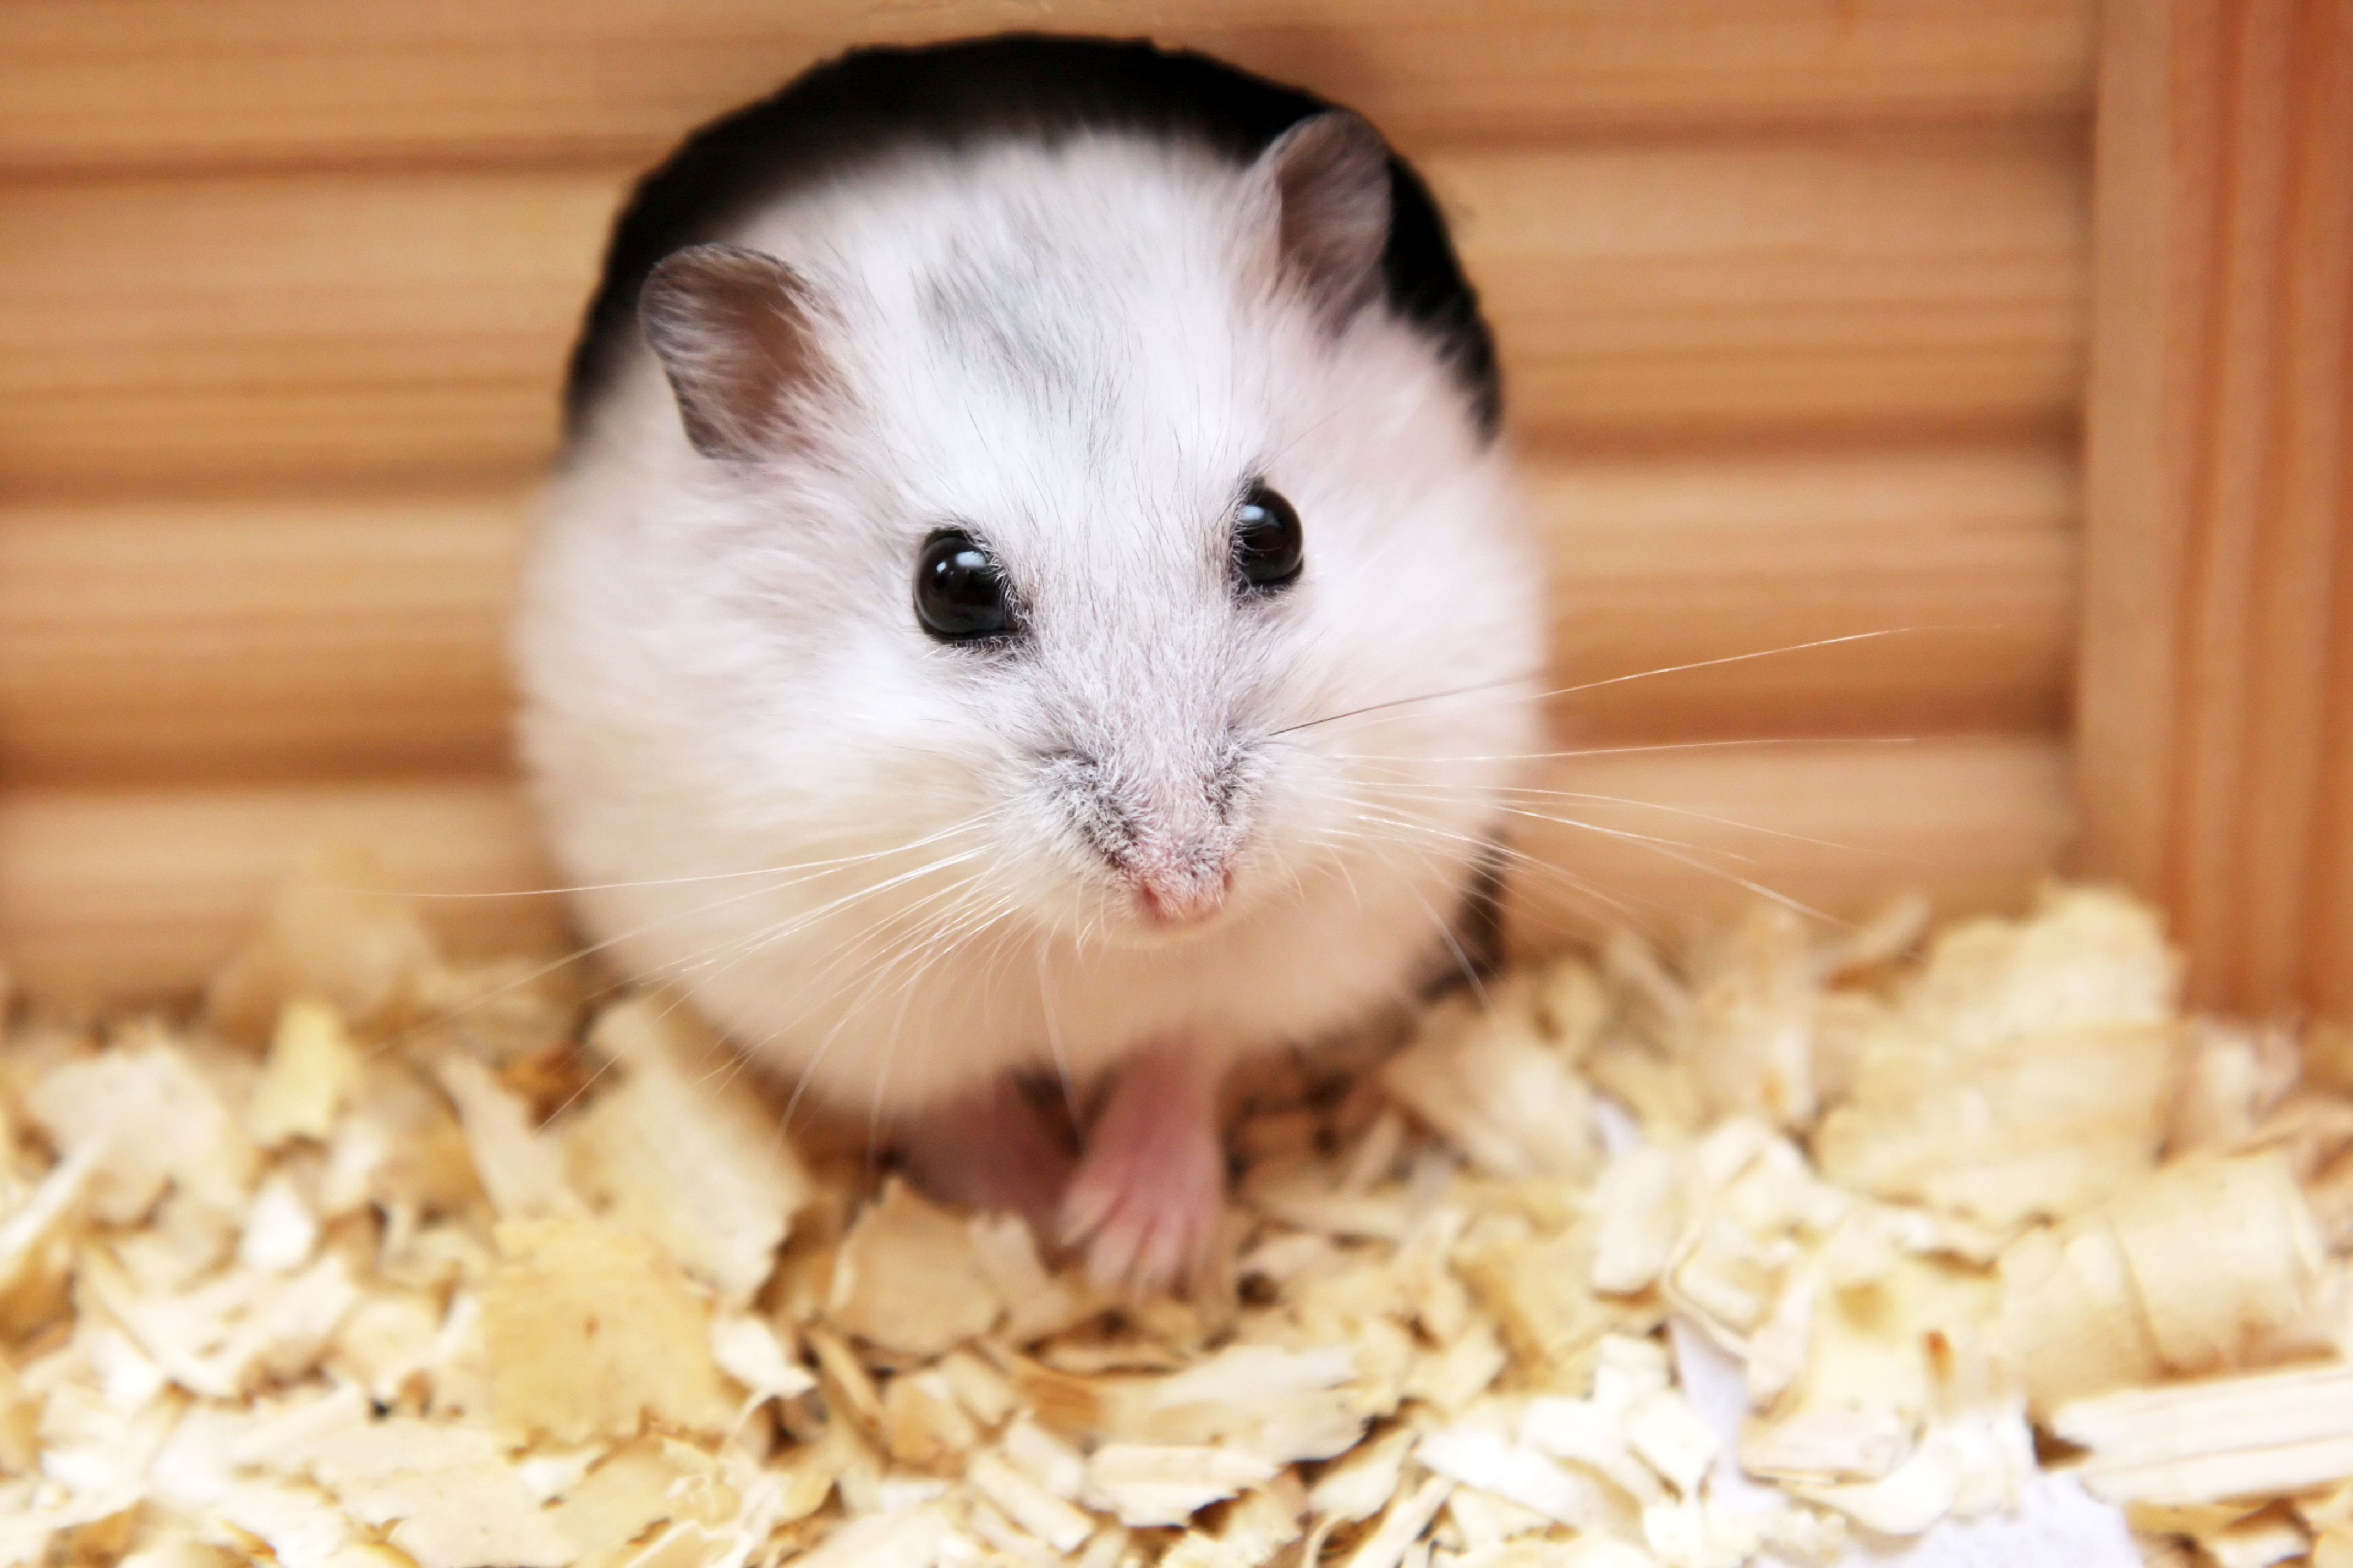 Download free HD Cute Baby Hamster Picture, image